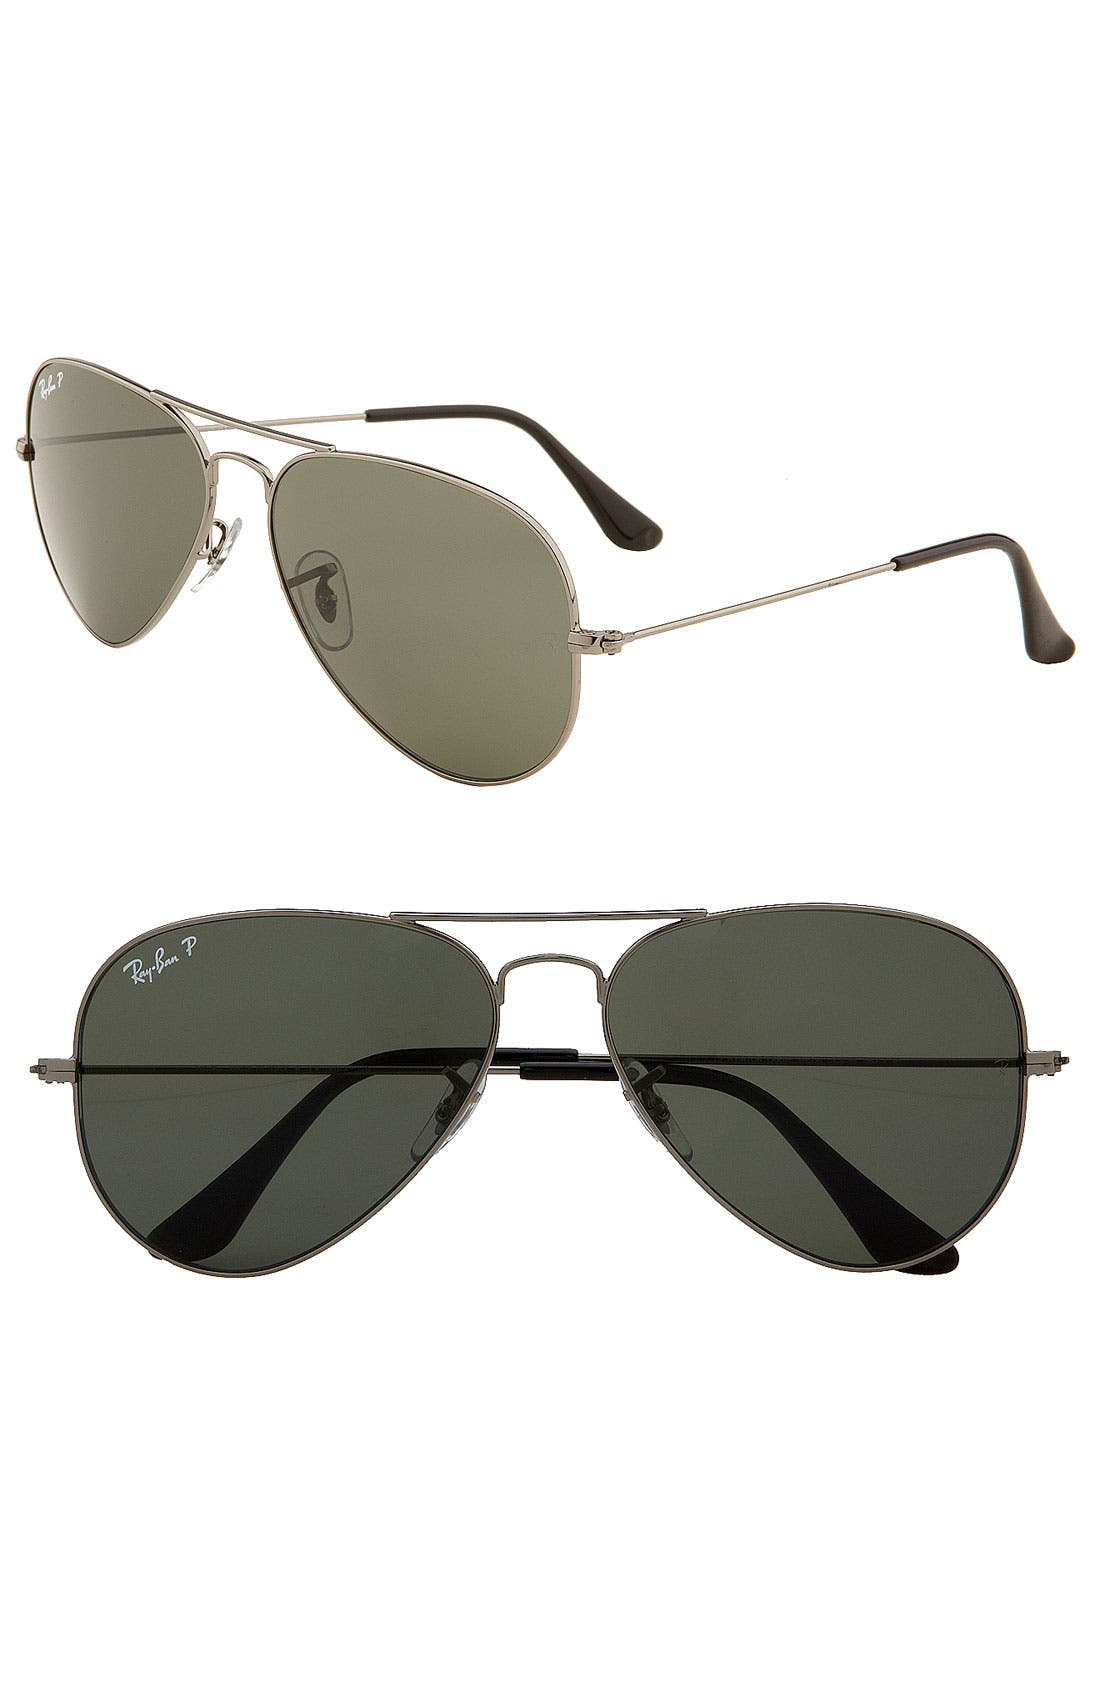 Main Image - Ray-Ban Original Aviator 58mm Polarized Sunglasses